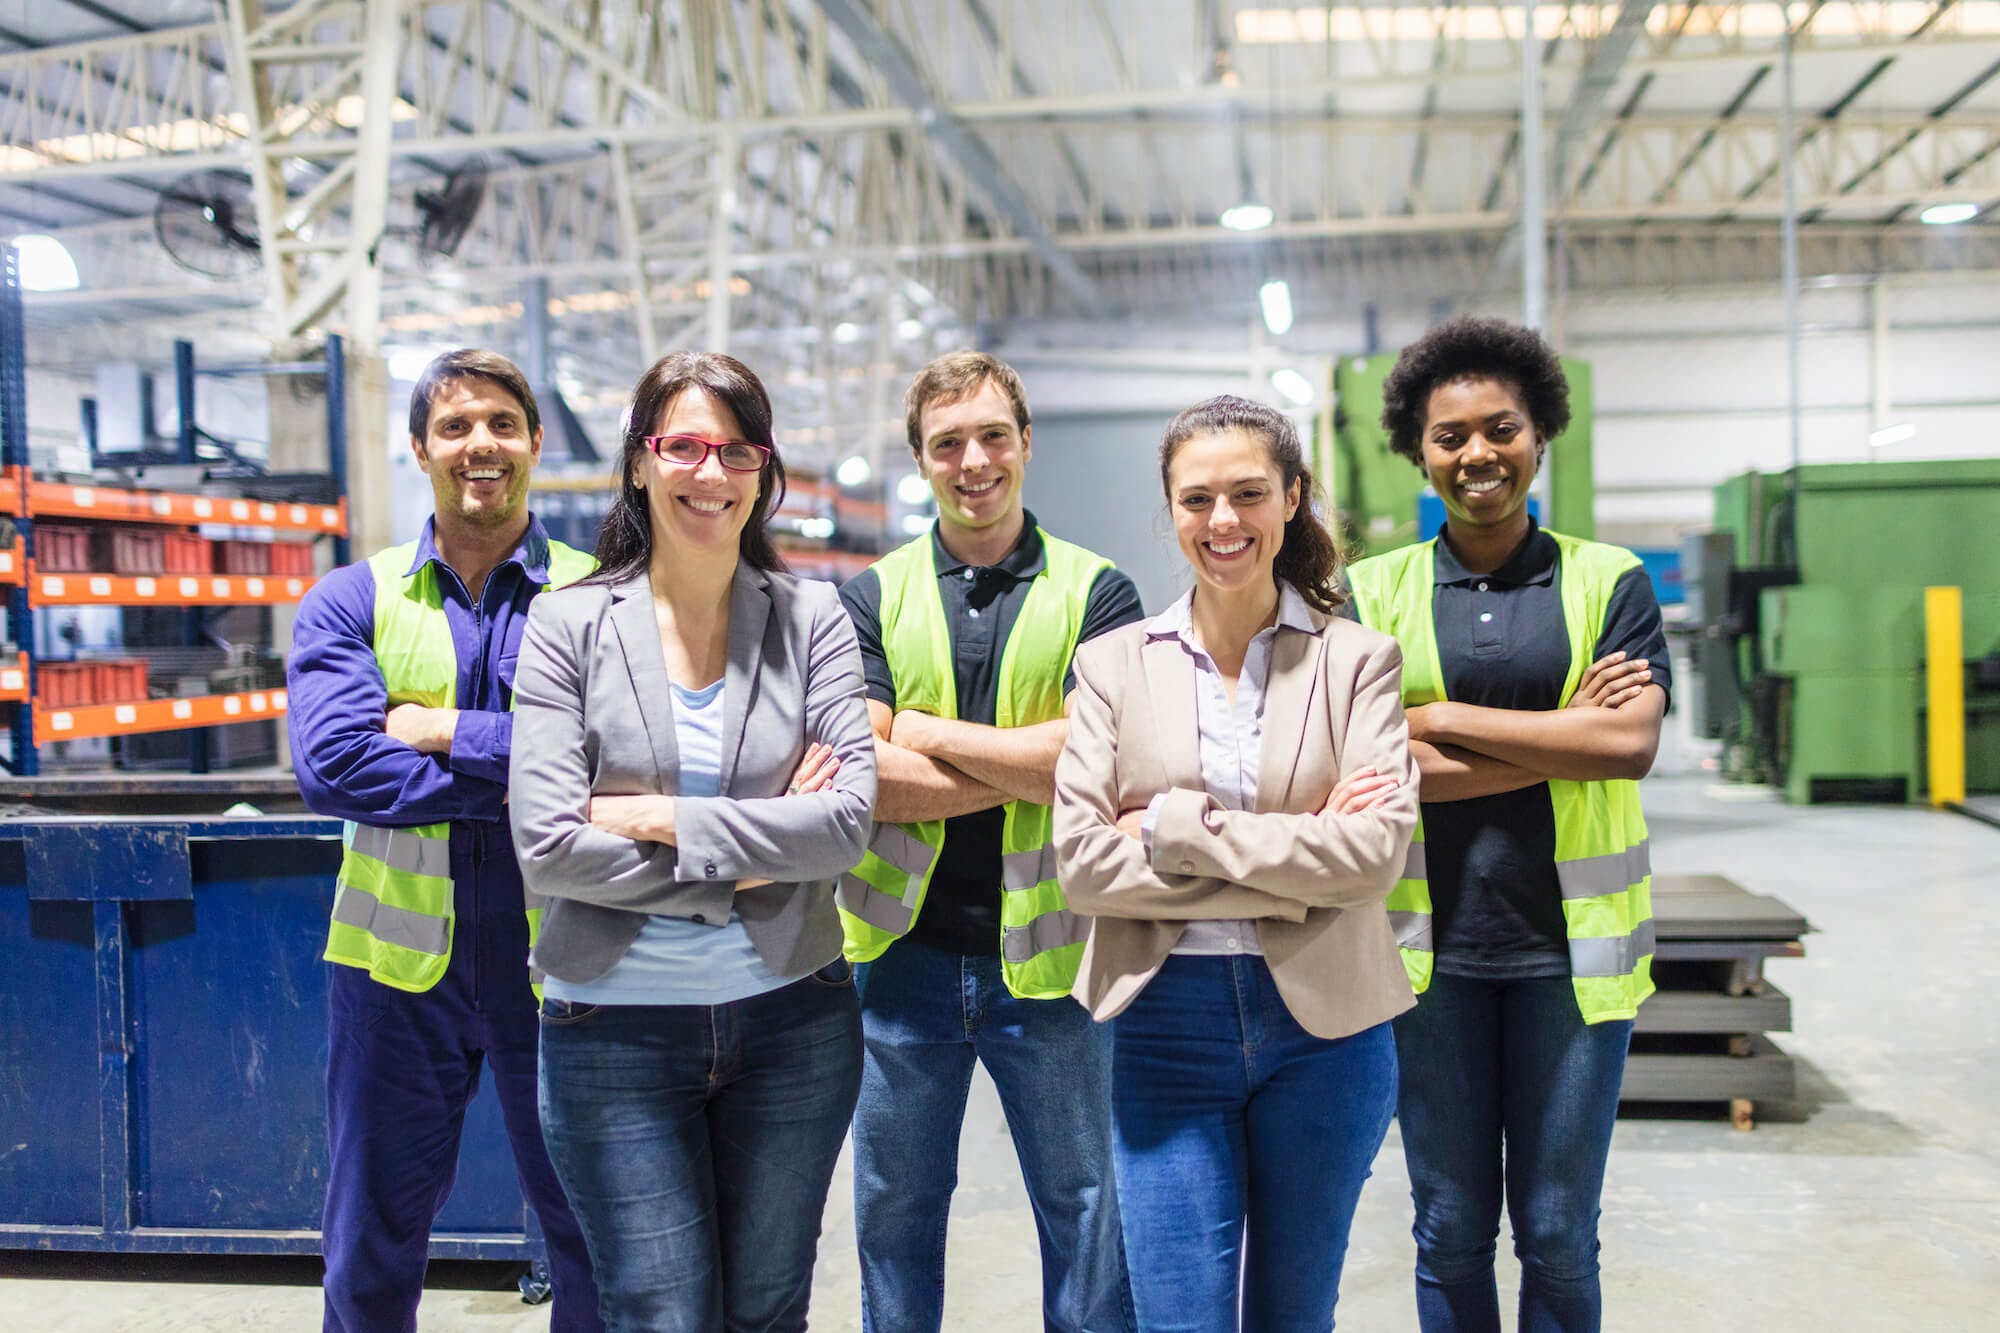 smiling team in warehouse